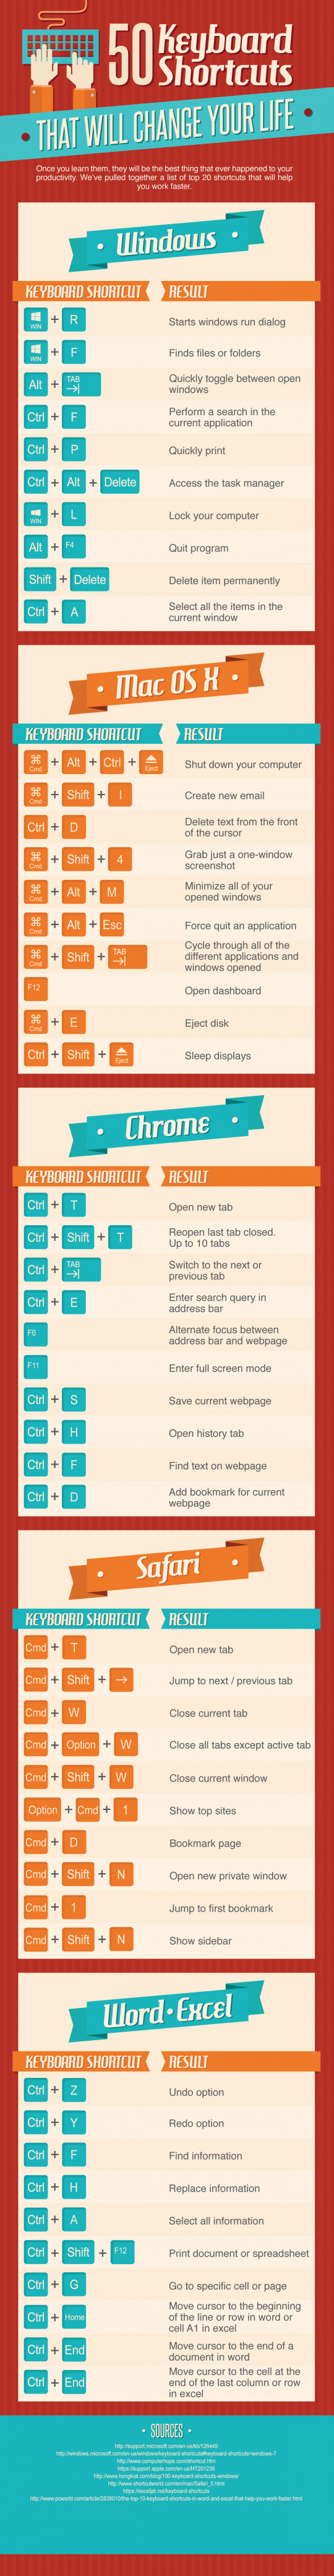 50 Keyboard Shortcuts Which Will Change Your Life